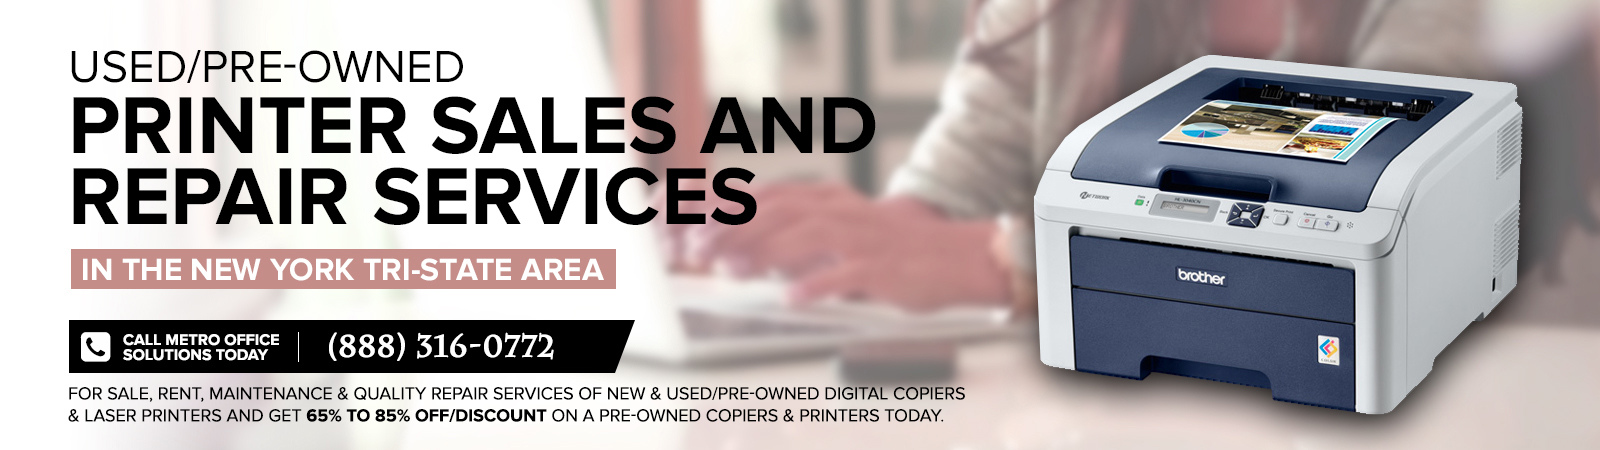 Used Copiers Printers for Sale New York NYC Image Banner